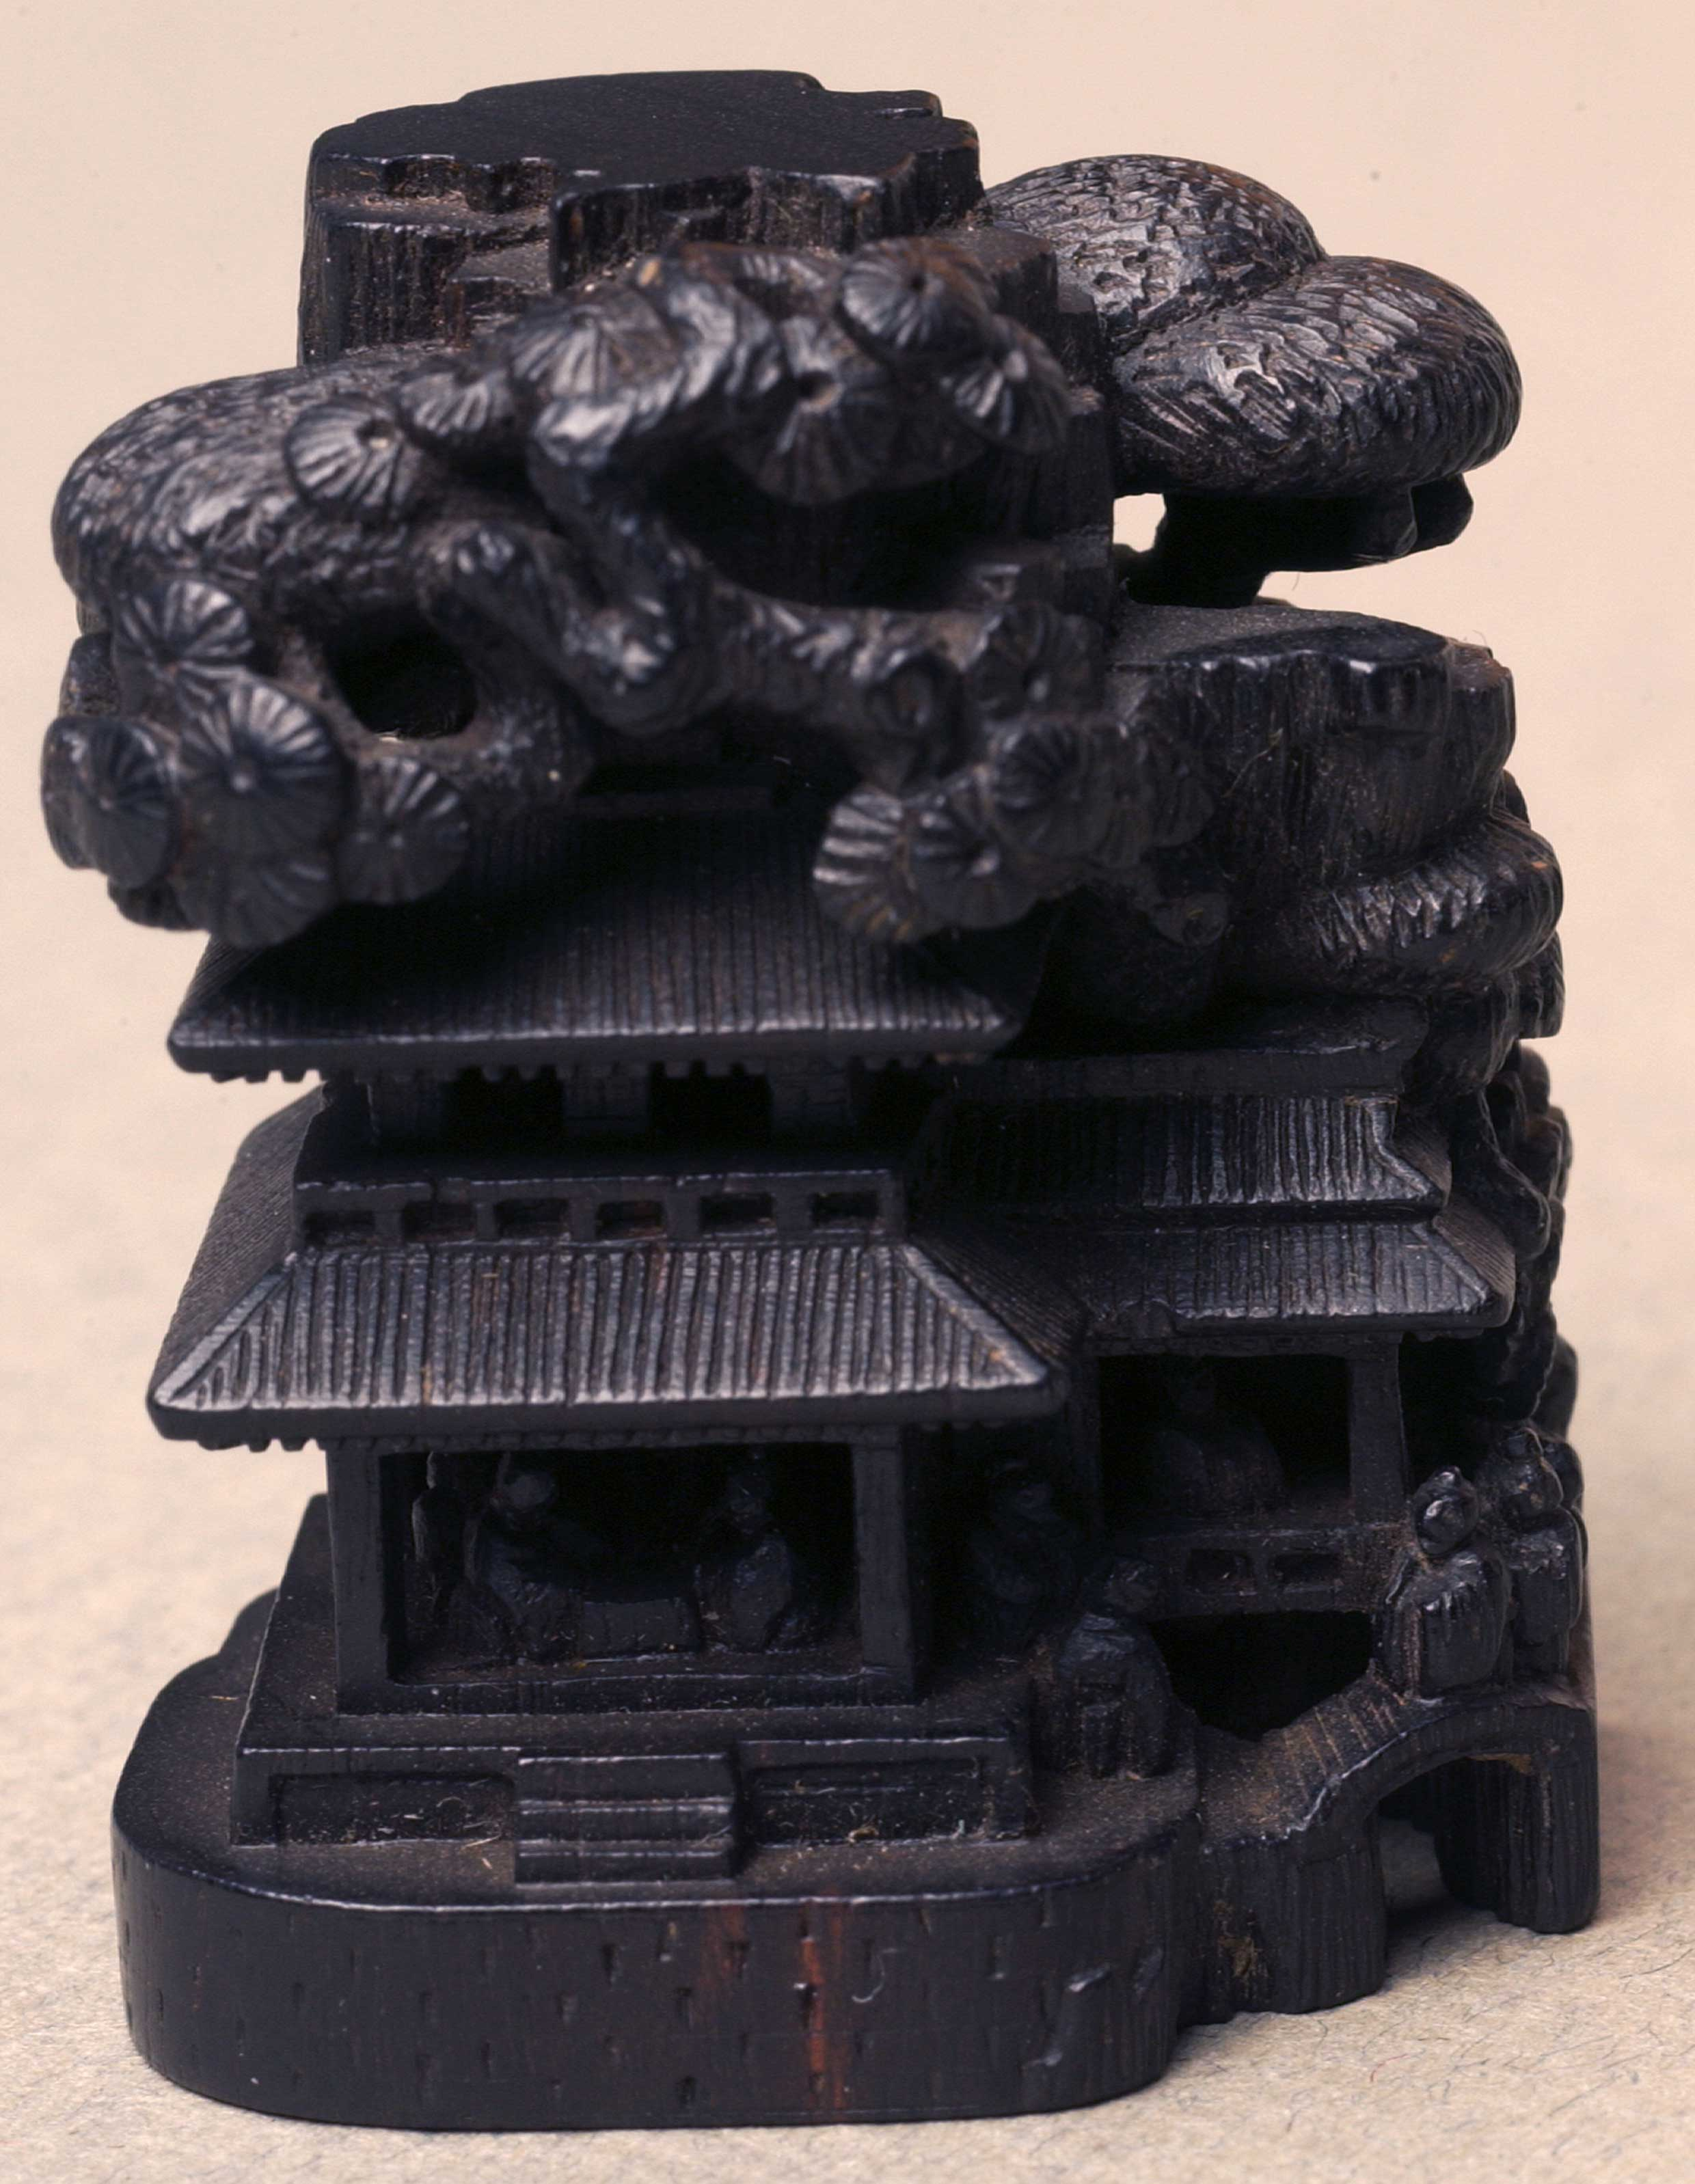 Netsuke depicting a Japanese house